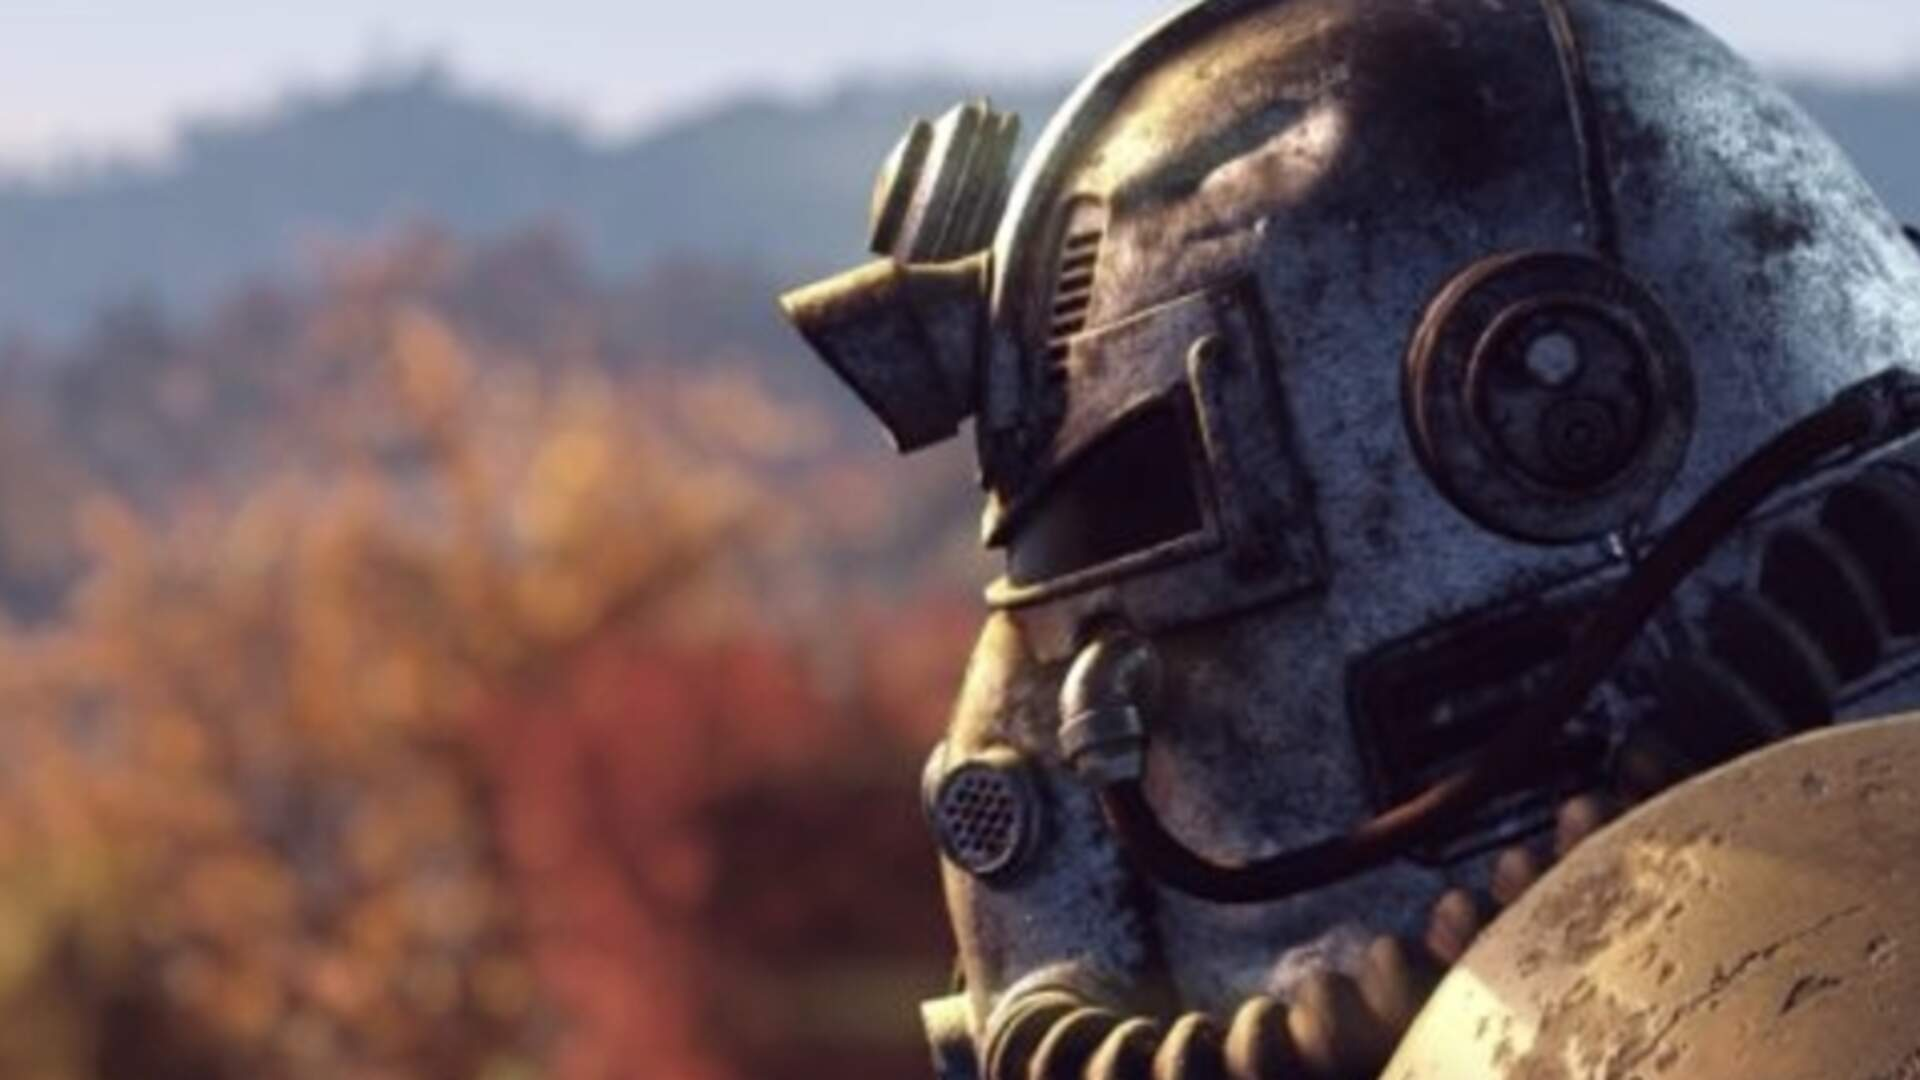 Hefty Fallout 76 Patch Clocks in at Nearly 50GB